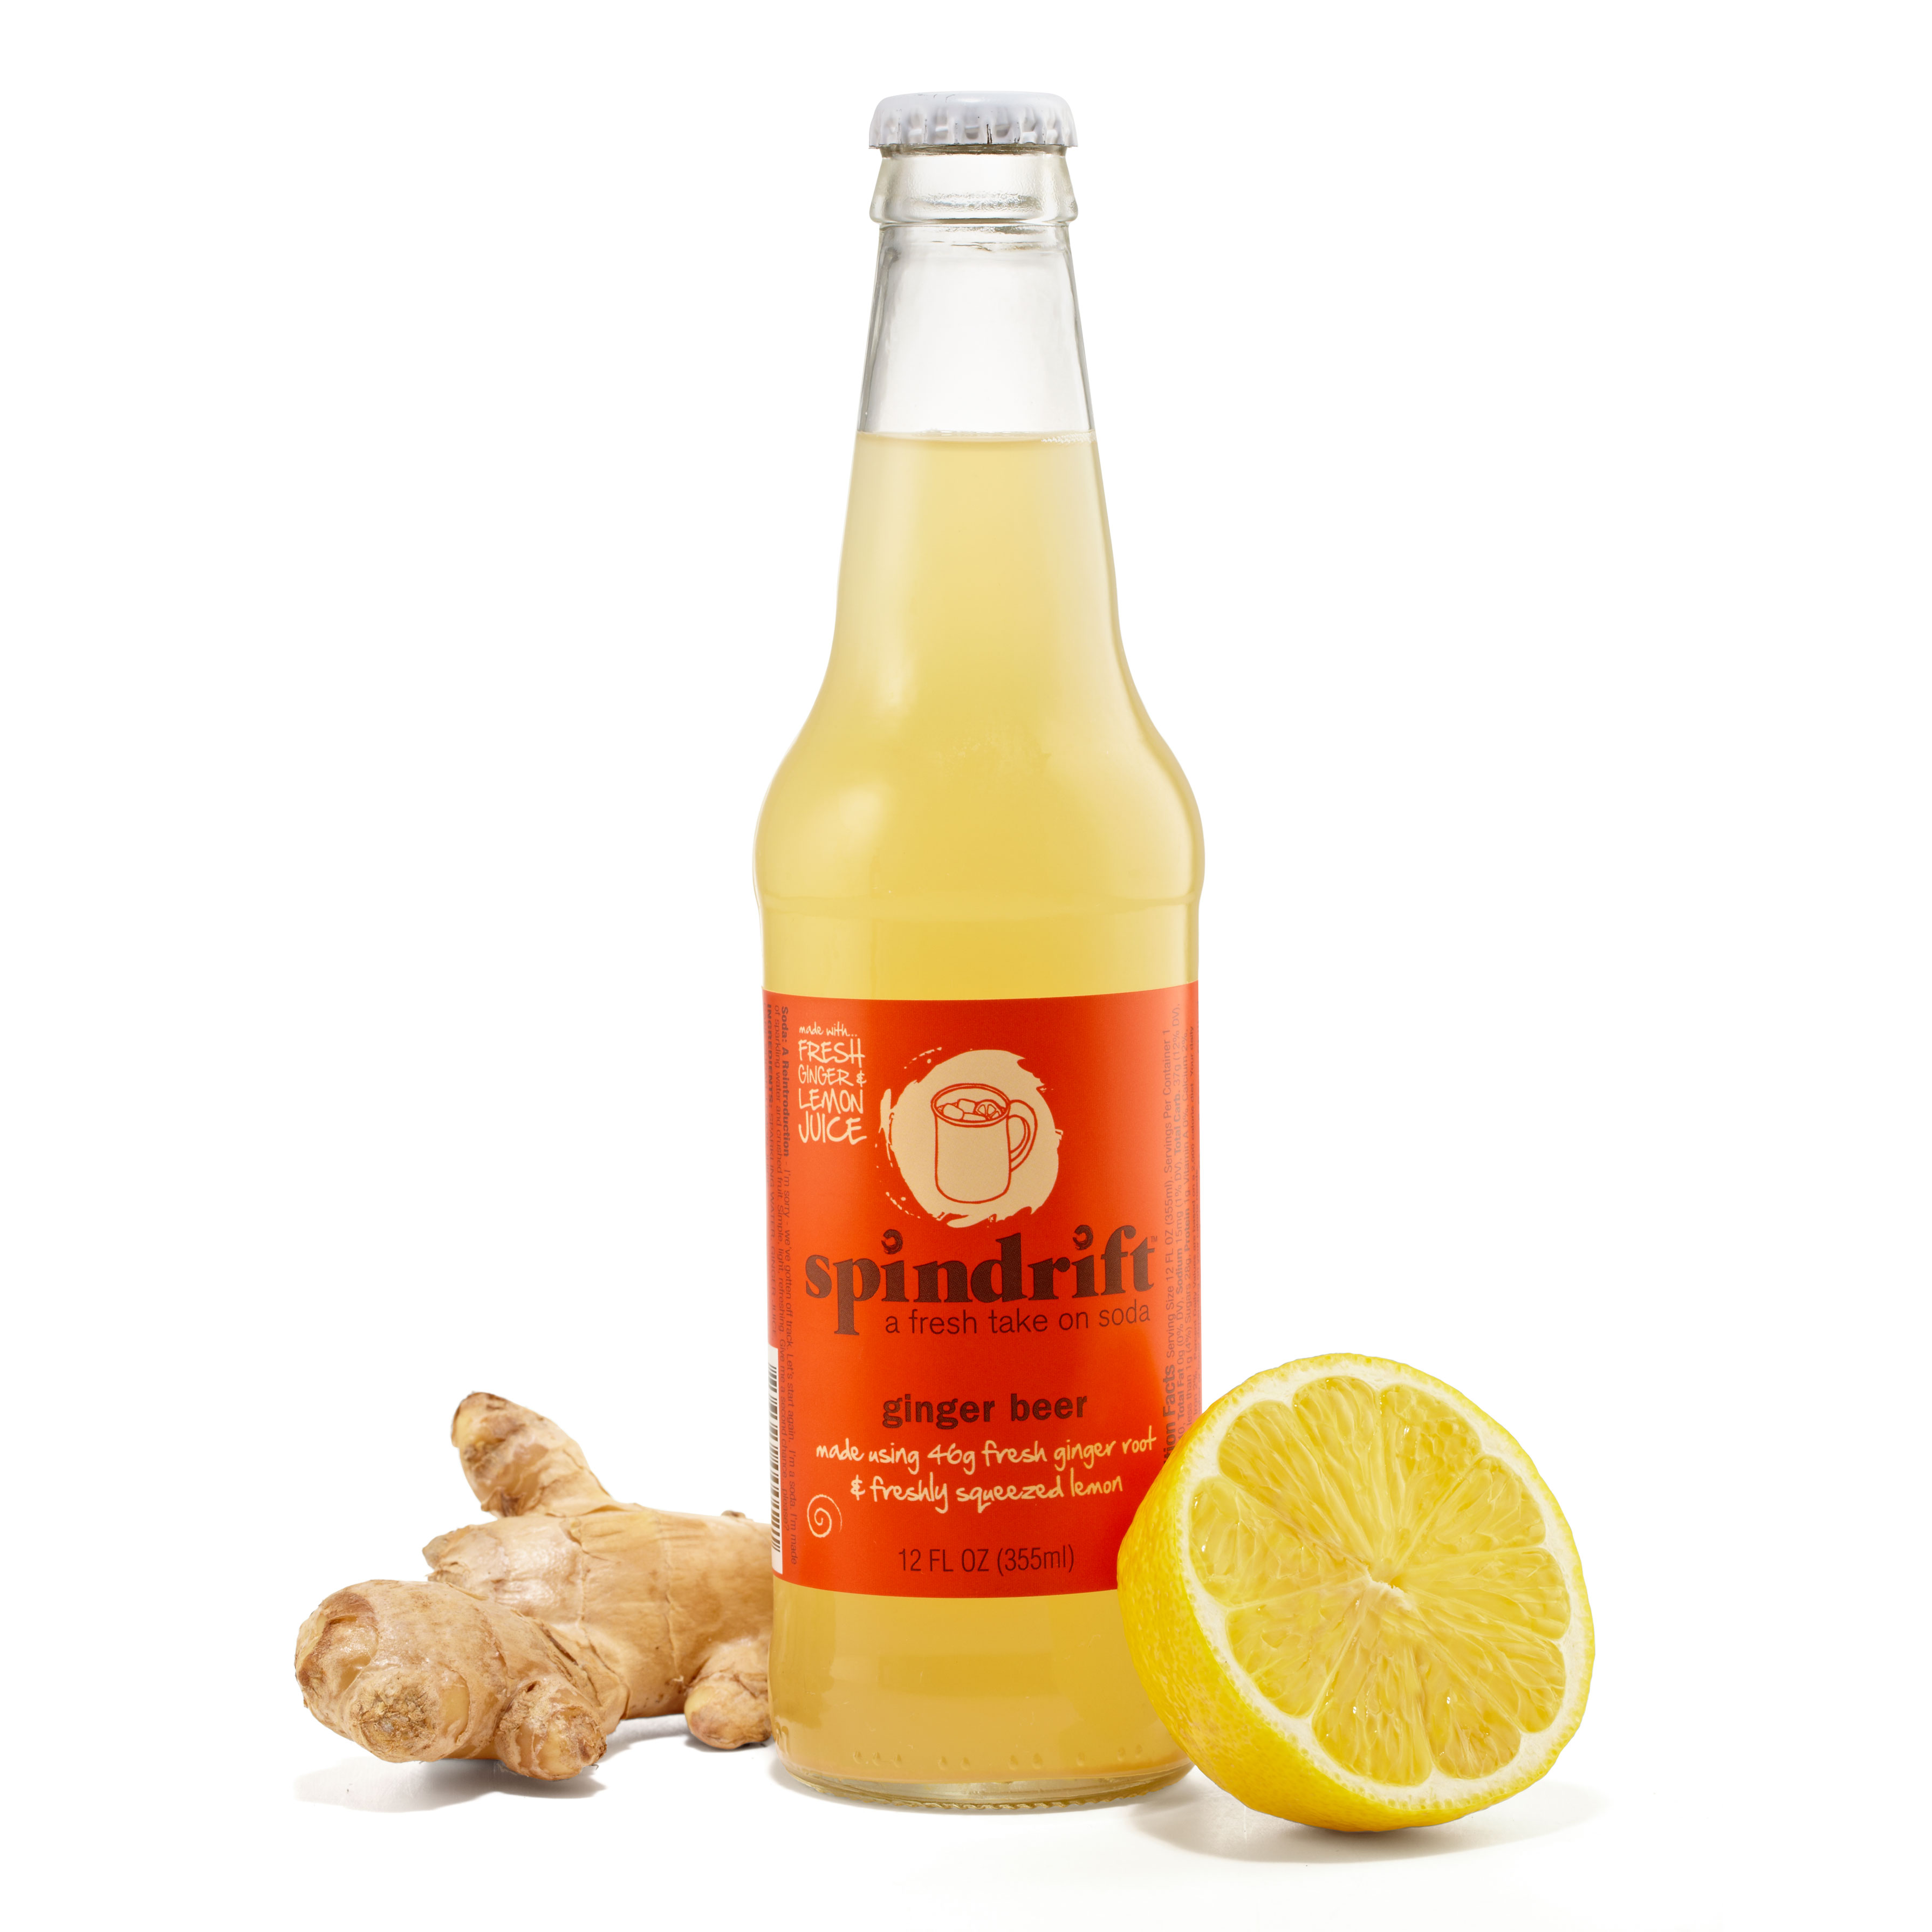 spindrift to launch revolutionary ginger beer at the summer fancy food